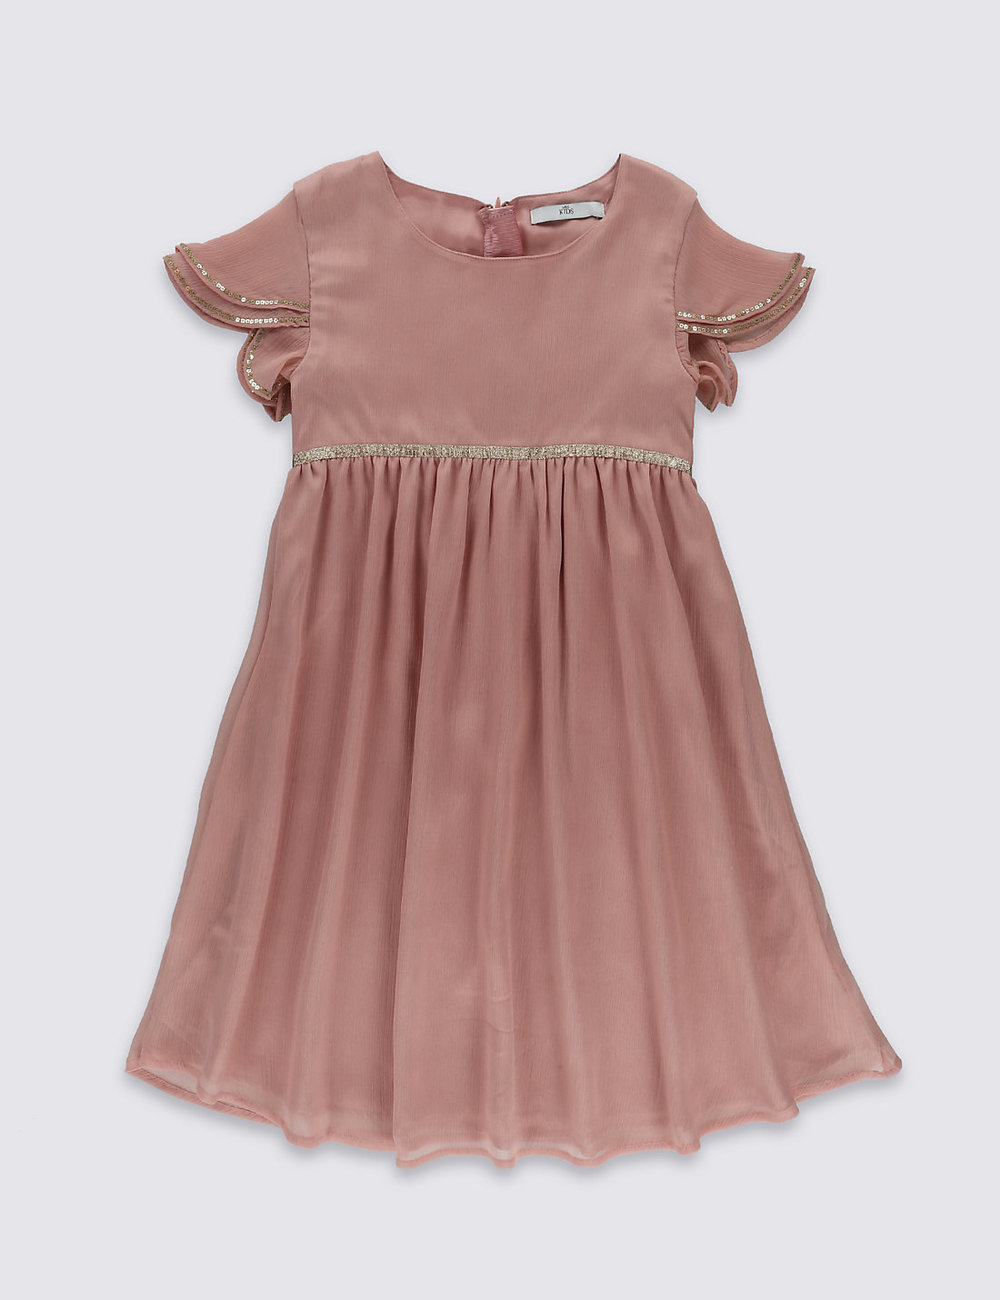 Chiffon Dress at M&S